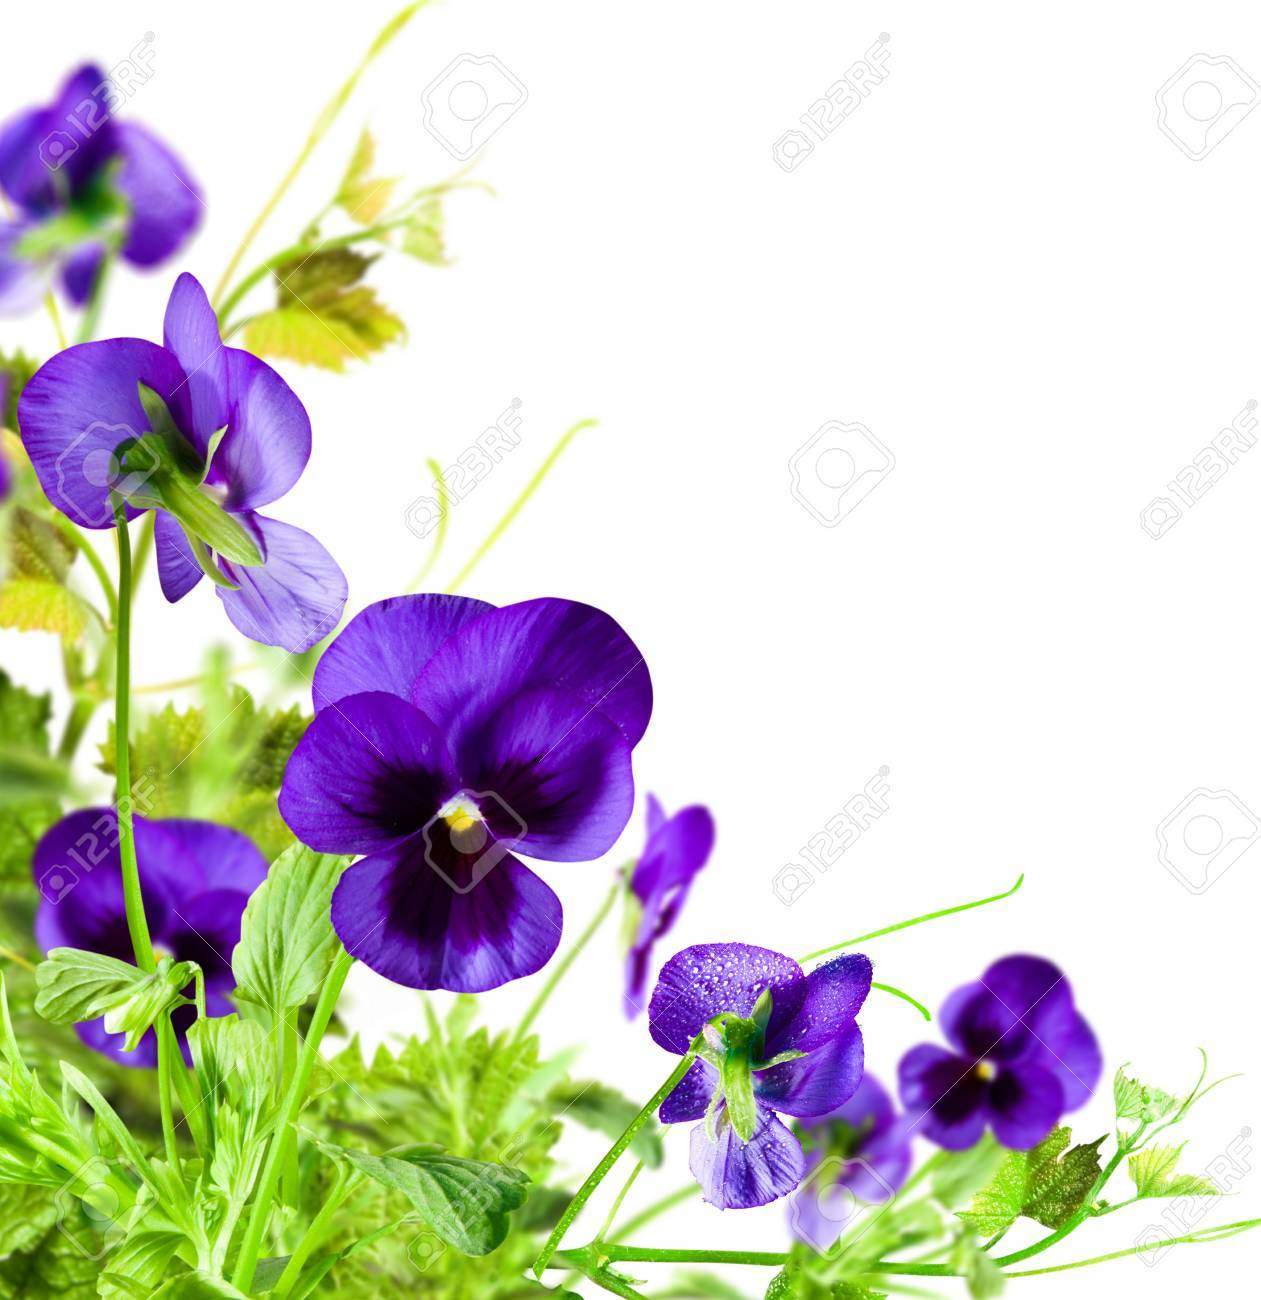 Flowers violet with green leafs on white  background Stock Photo - 13107332